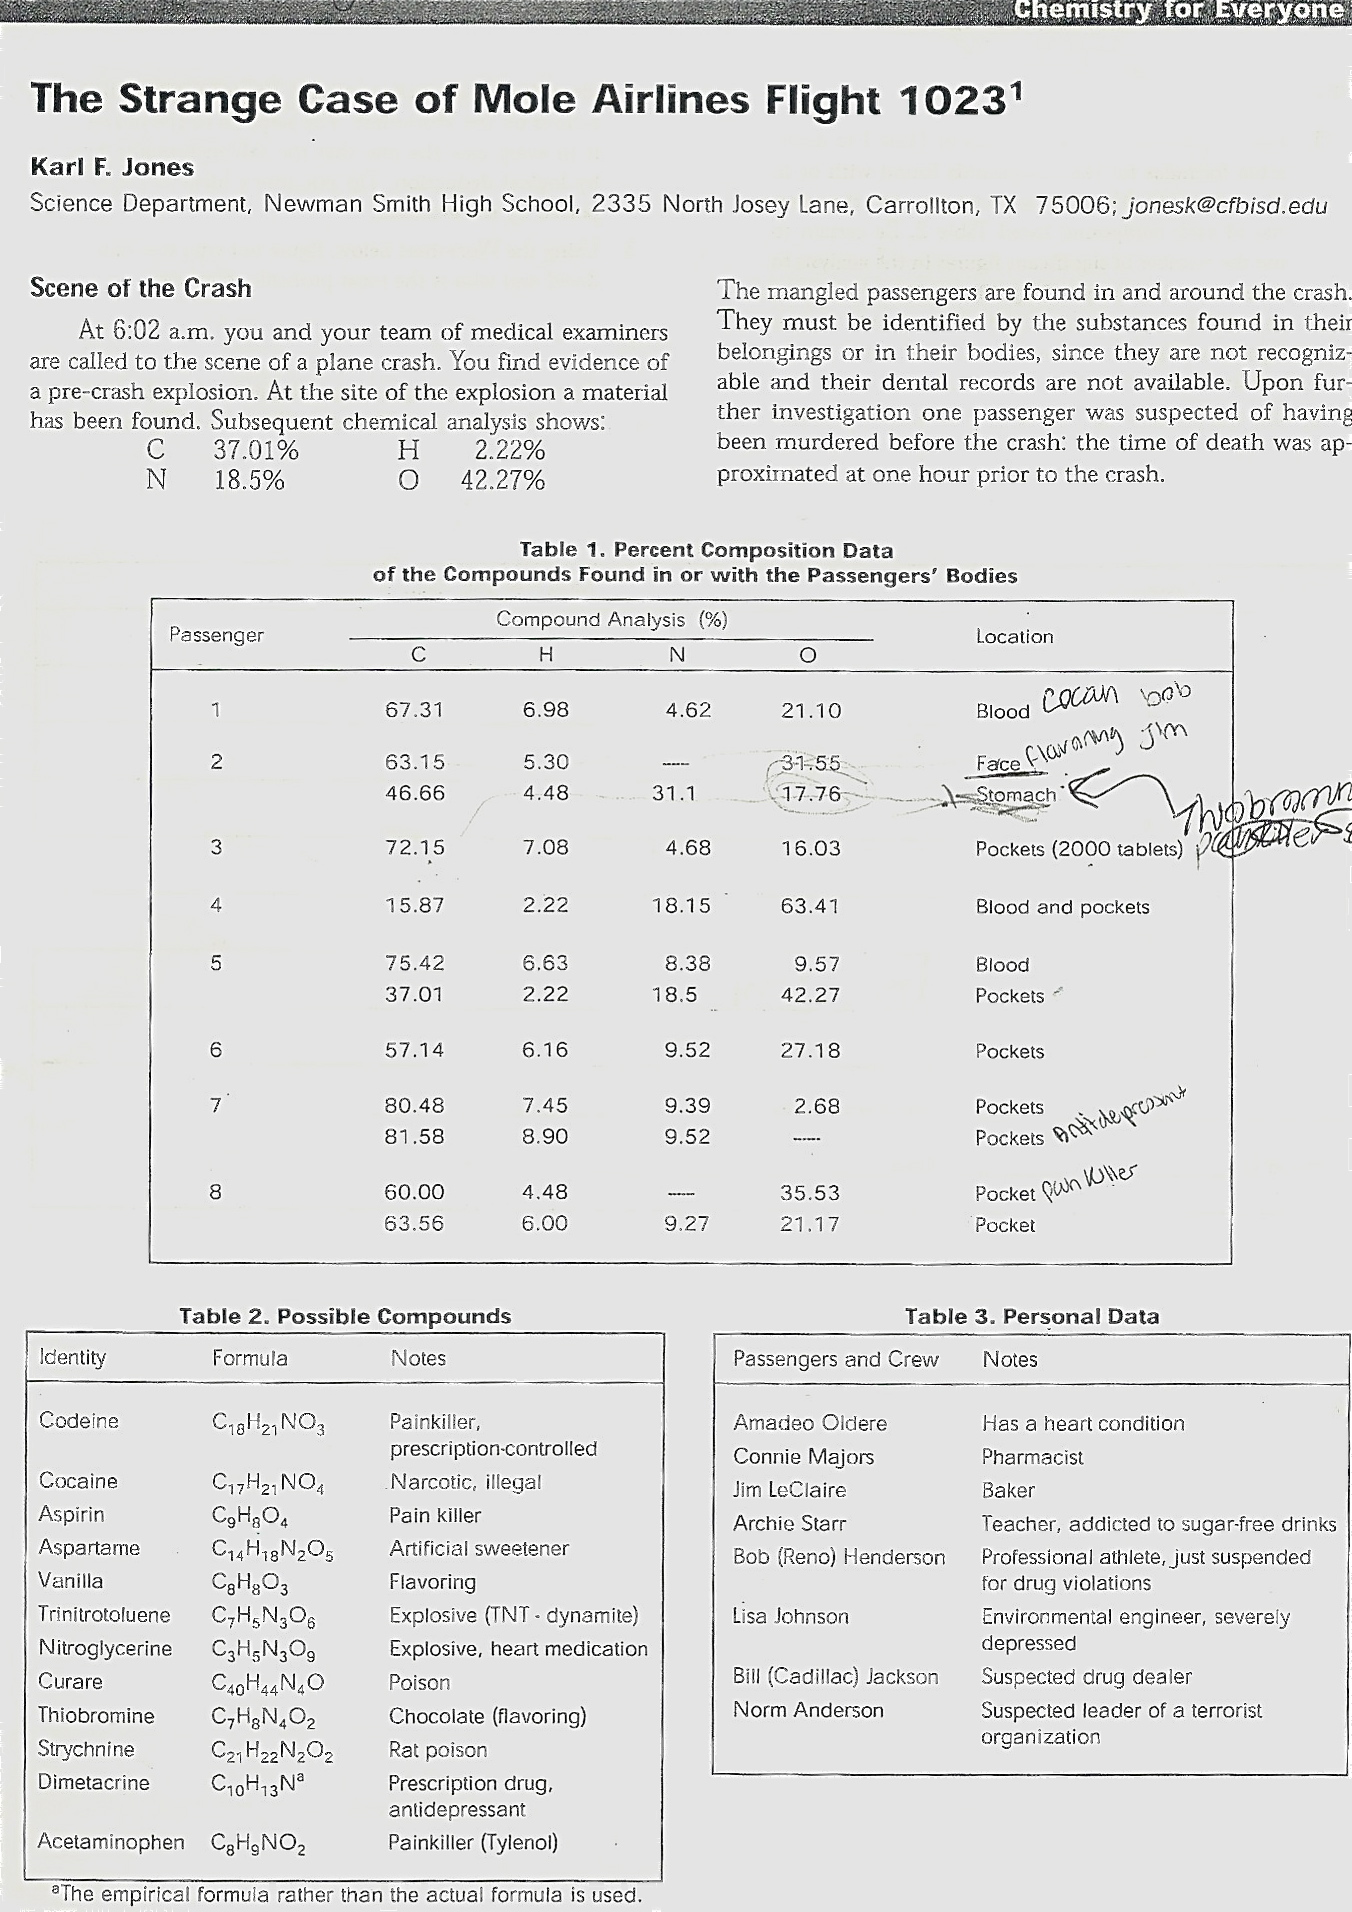 The Strange Case Of Mole Airlines Chemistry Worksheet Yeah Chemistry